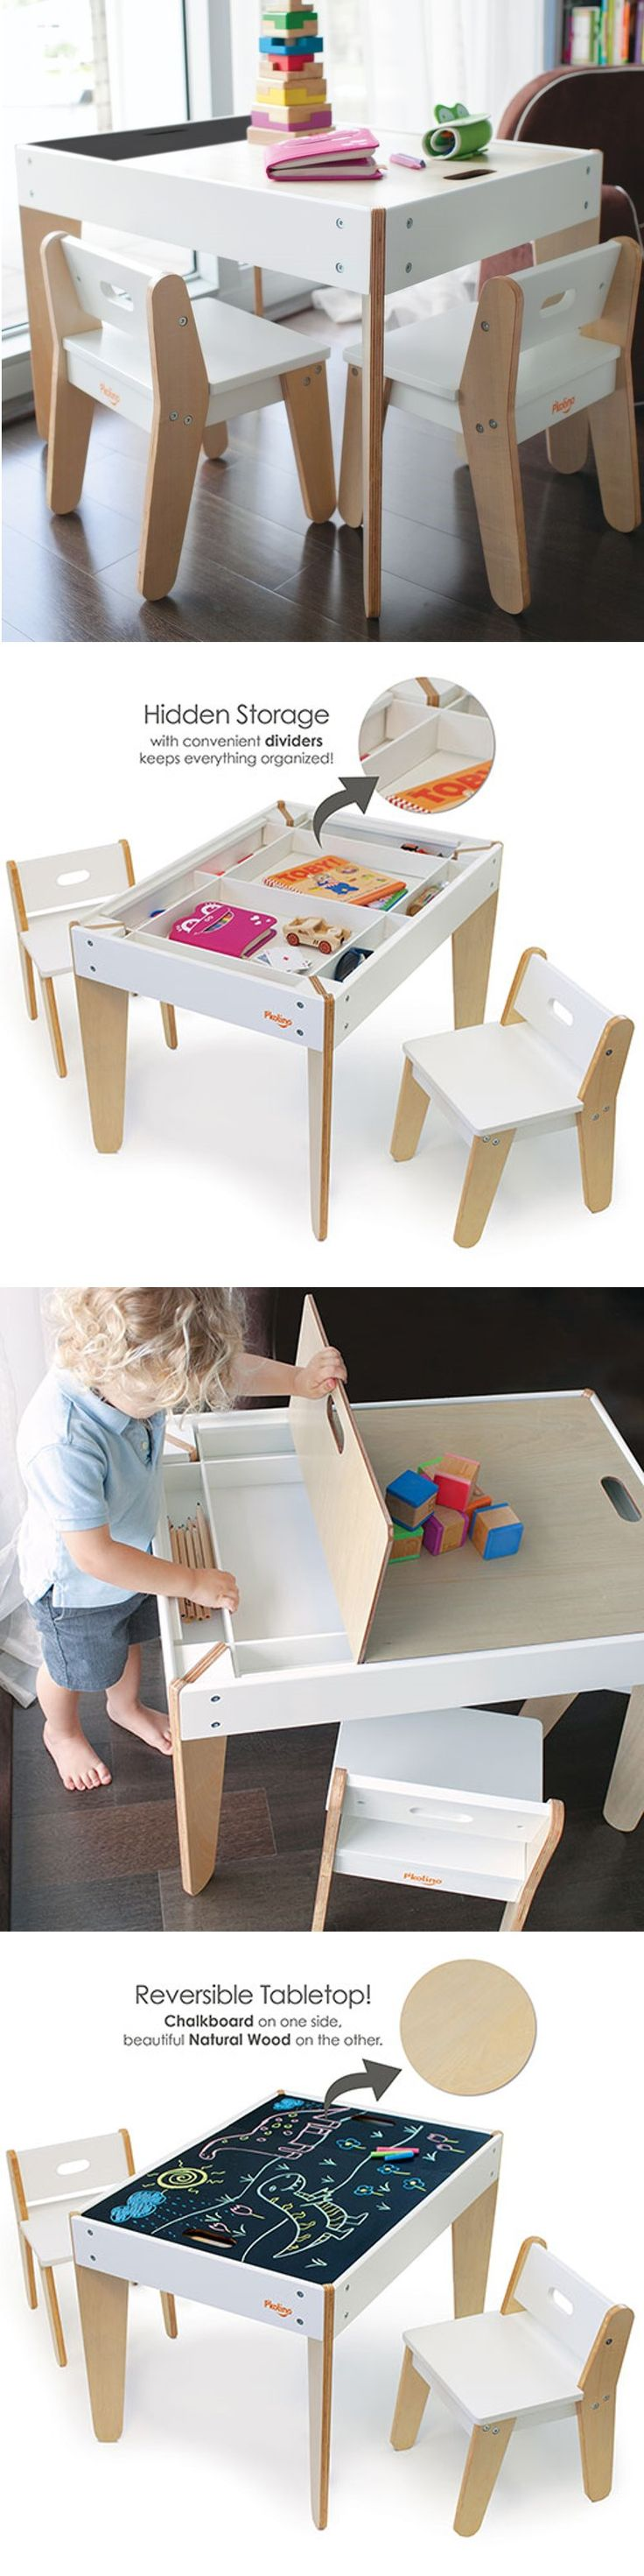 Built In Storage Hidden Table Storage Practical Kids Furniture